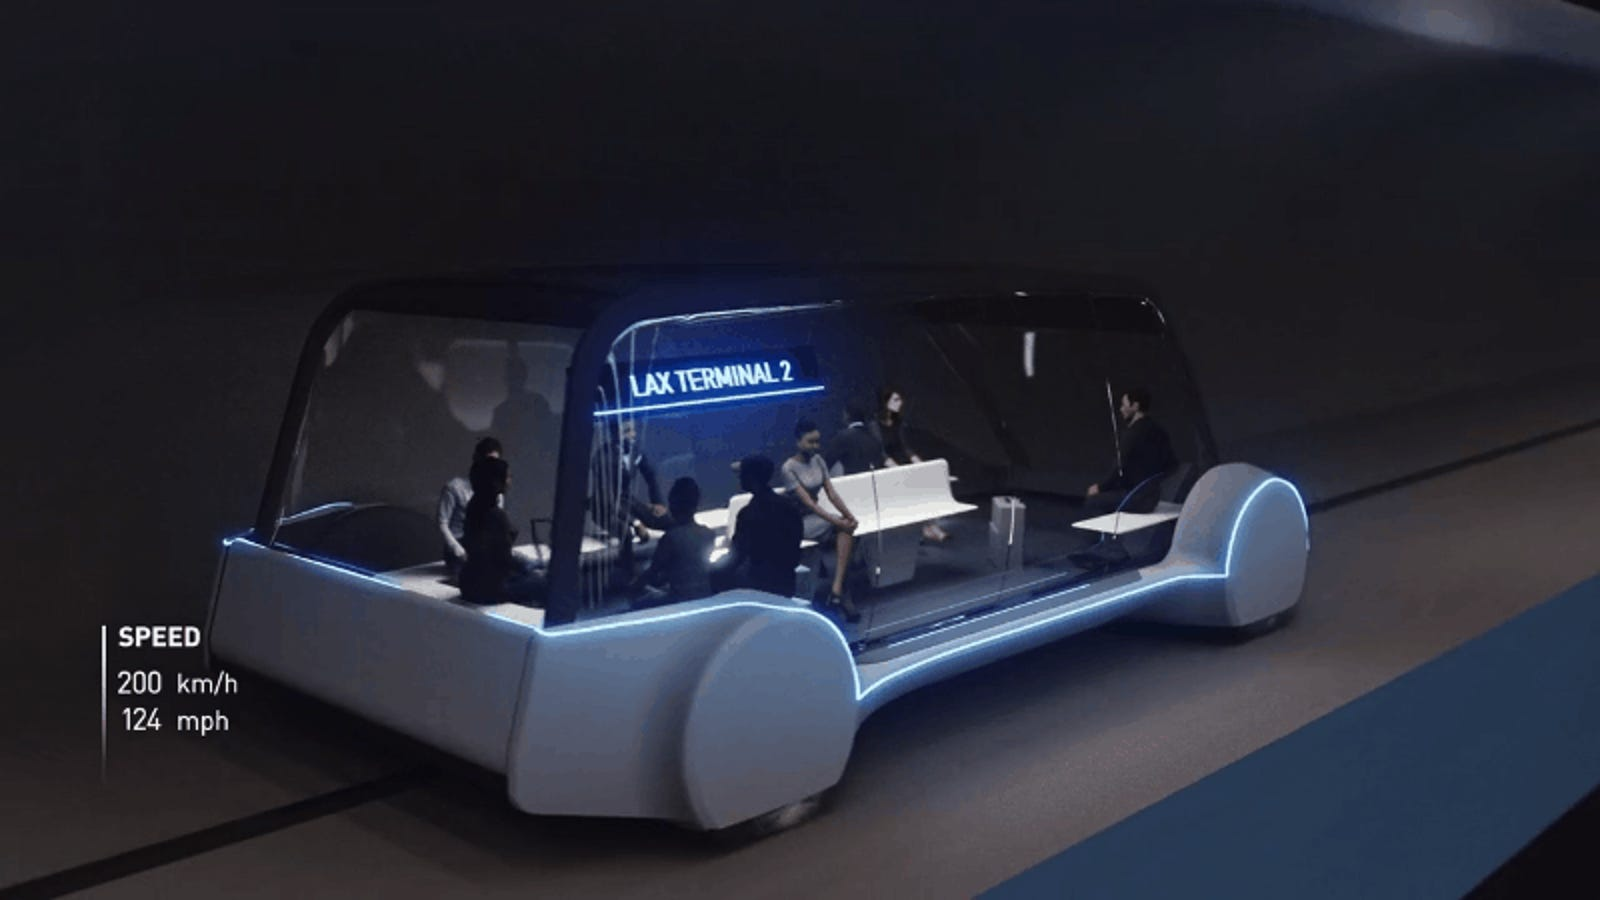 Elon Musk's Boring Company Wins Bid to Build High-Speed Underground Rail in Chicago